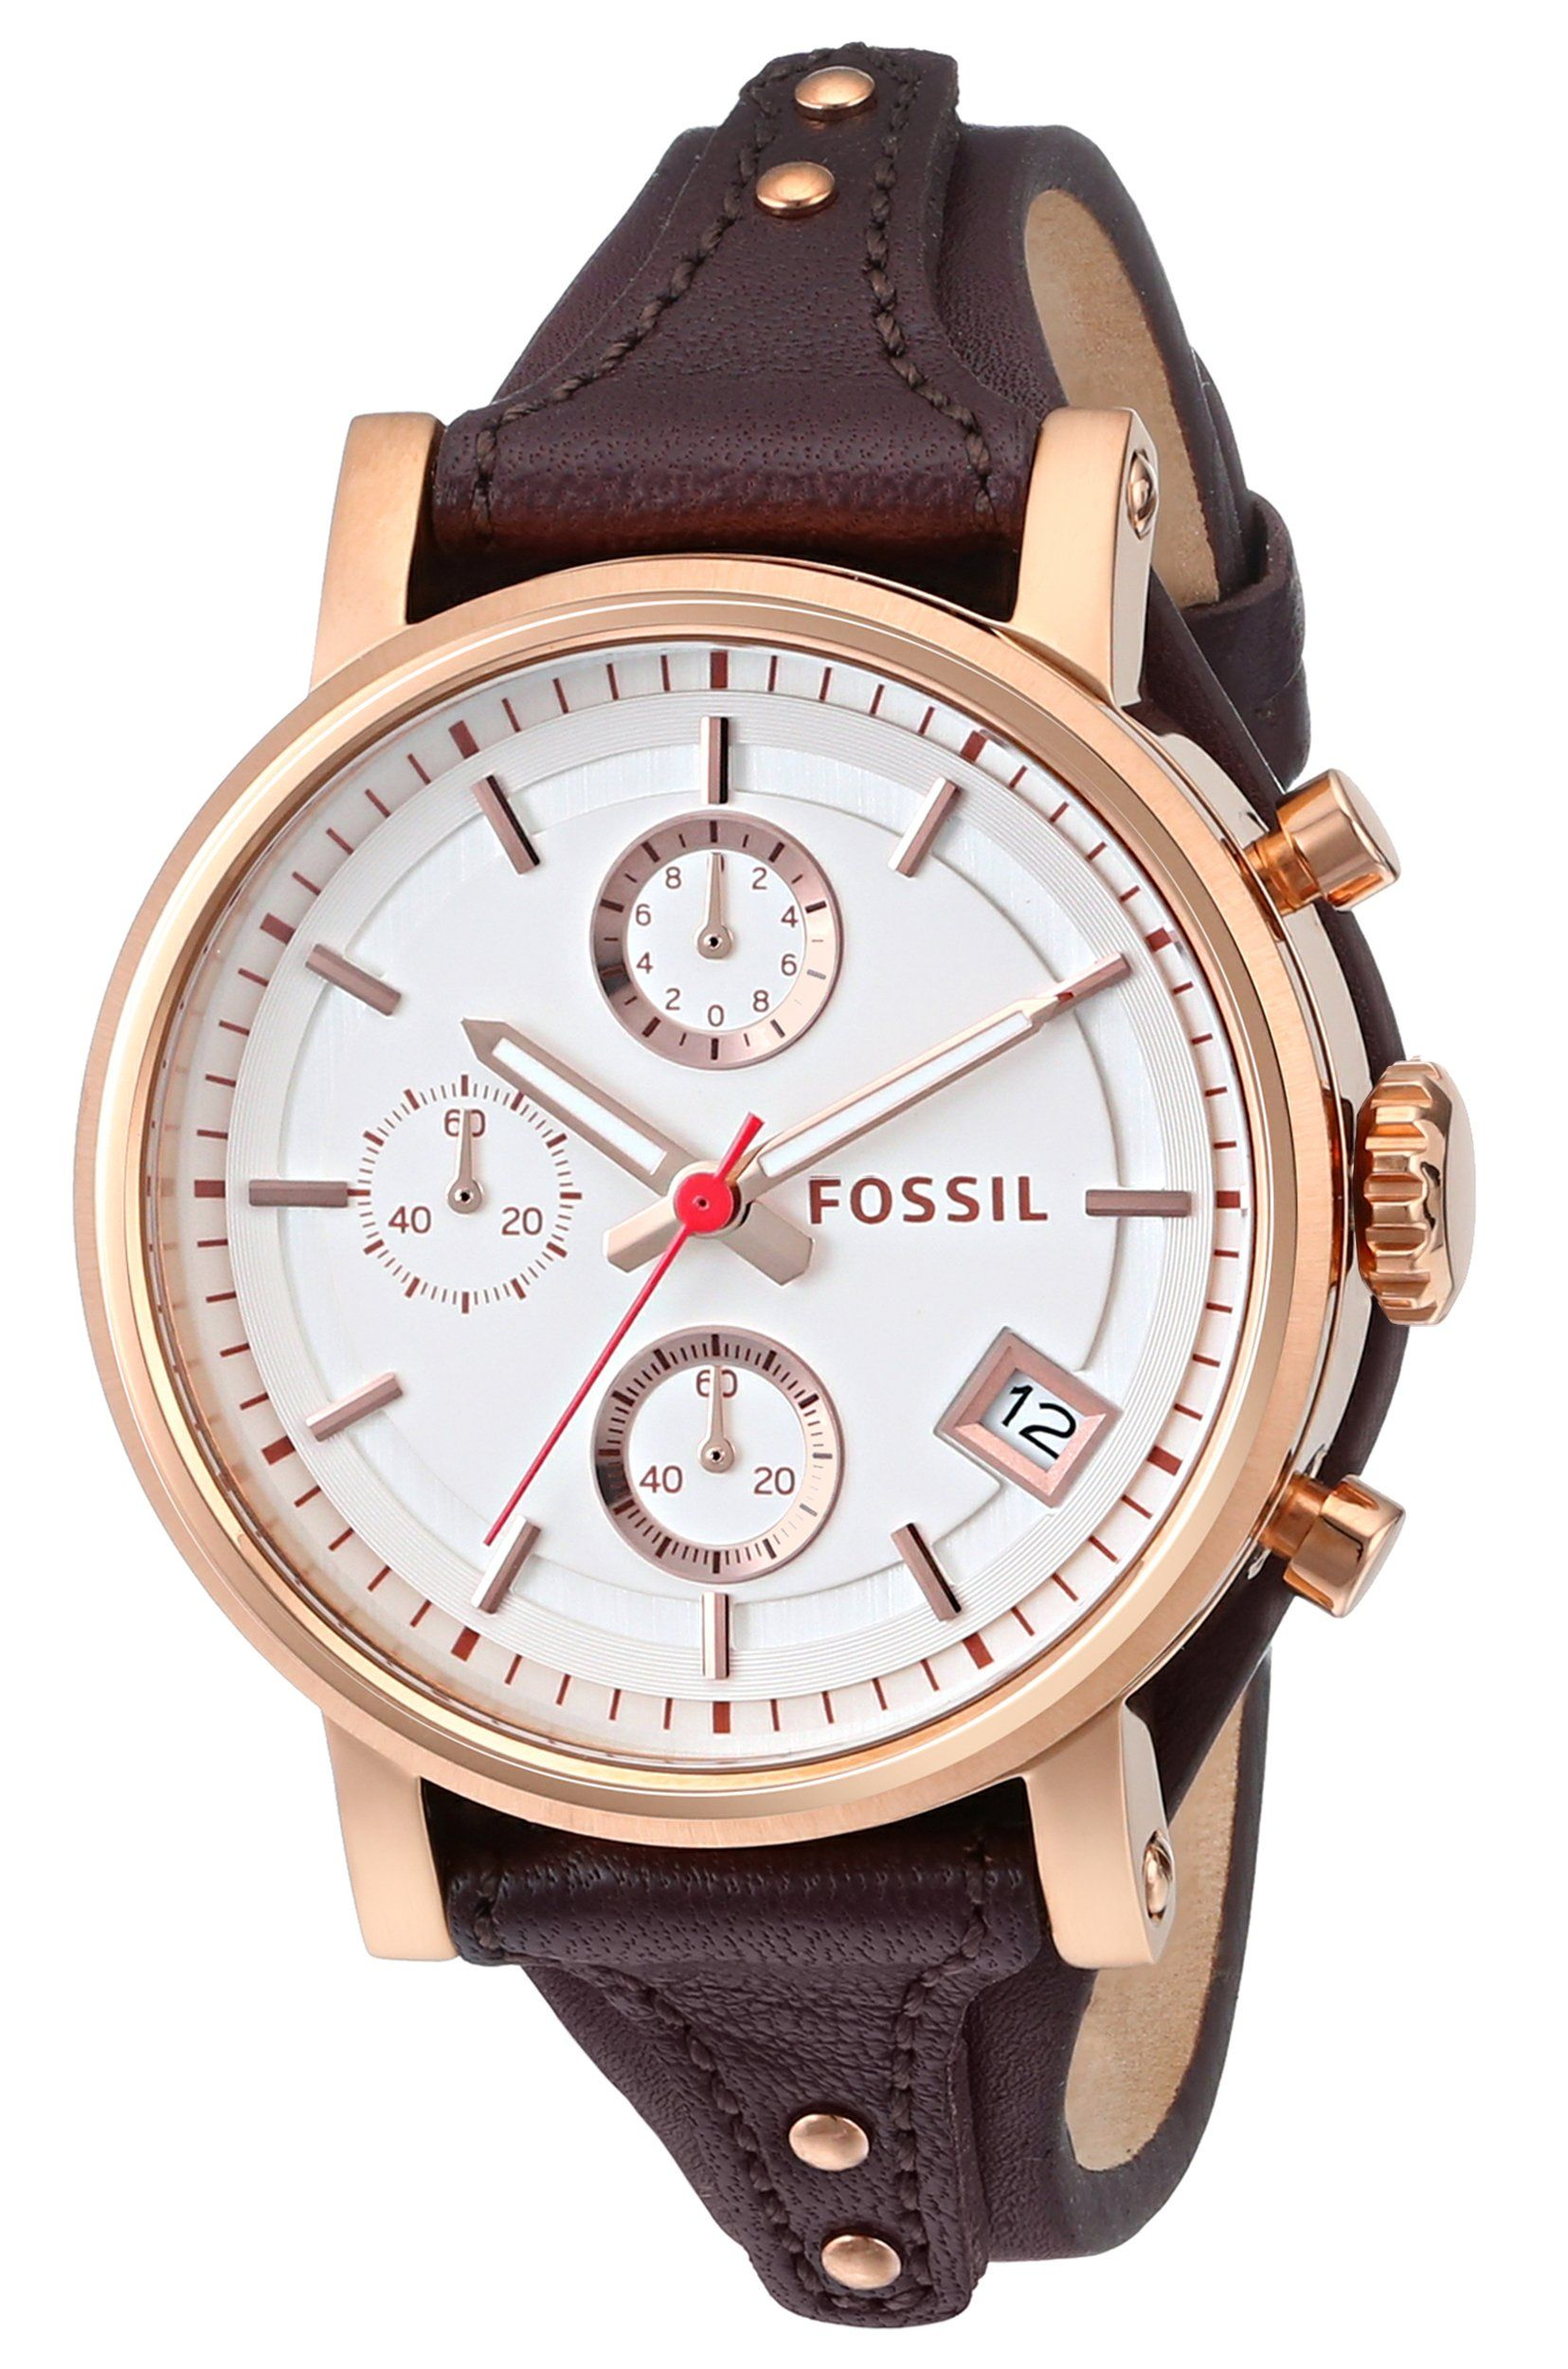 0f4c8c41948 Fossil Women s ES3616 Original Boyfriend Chronograph Leather Watch - Brown